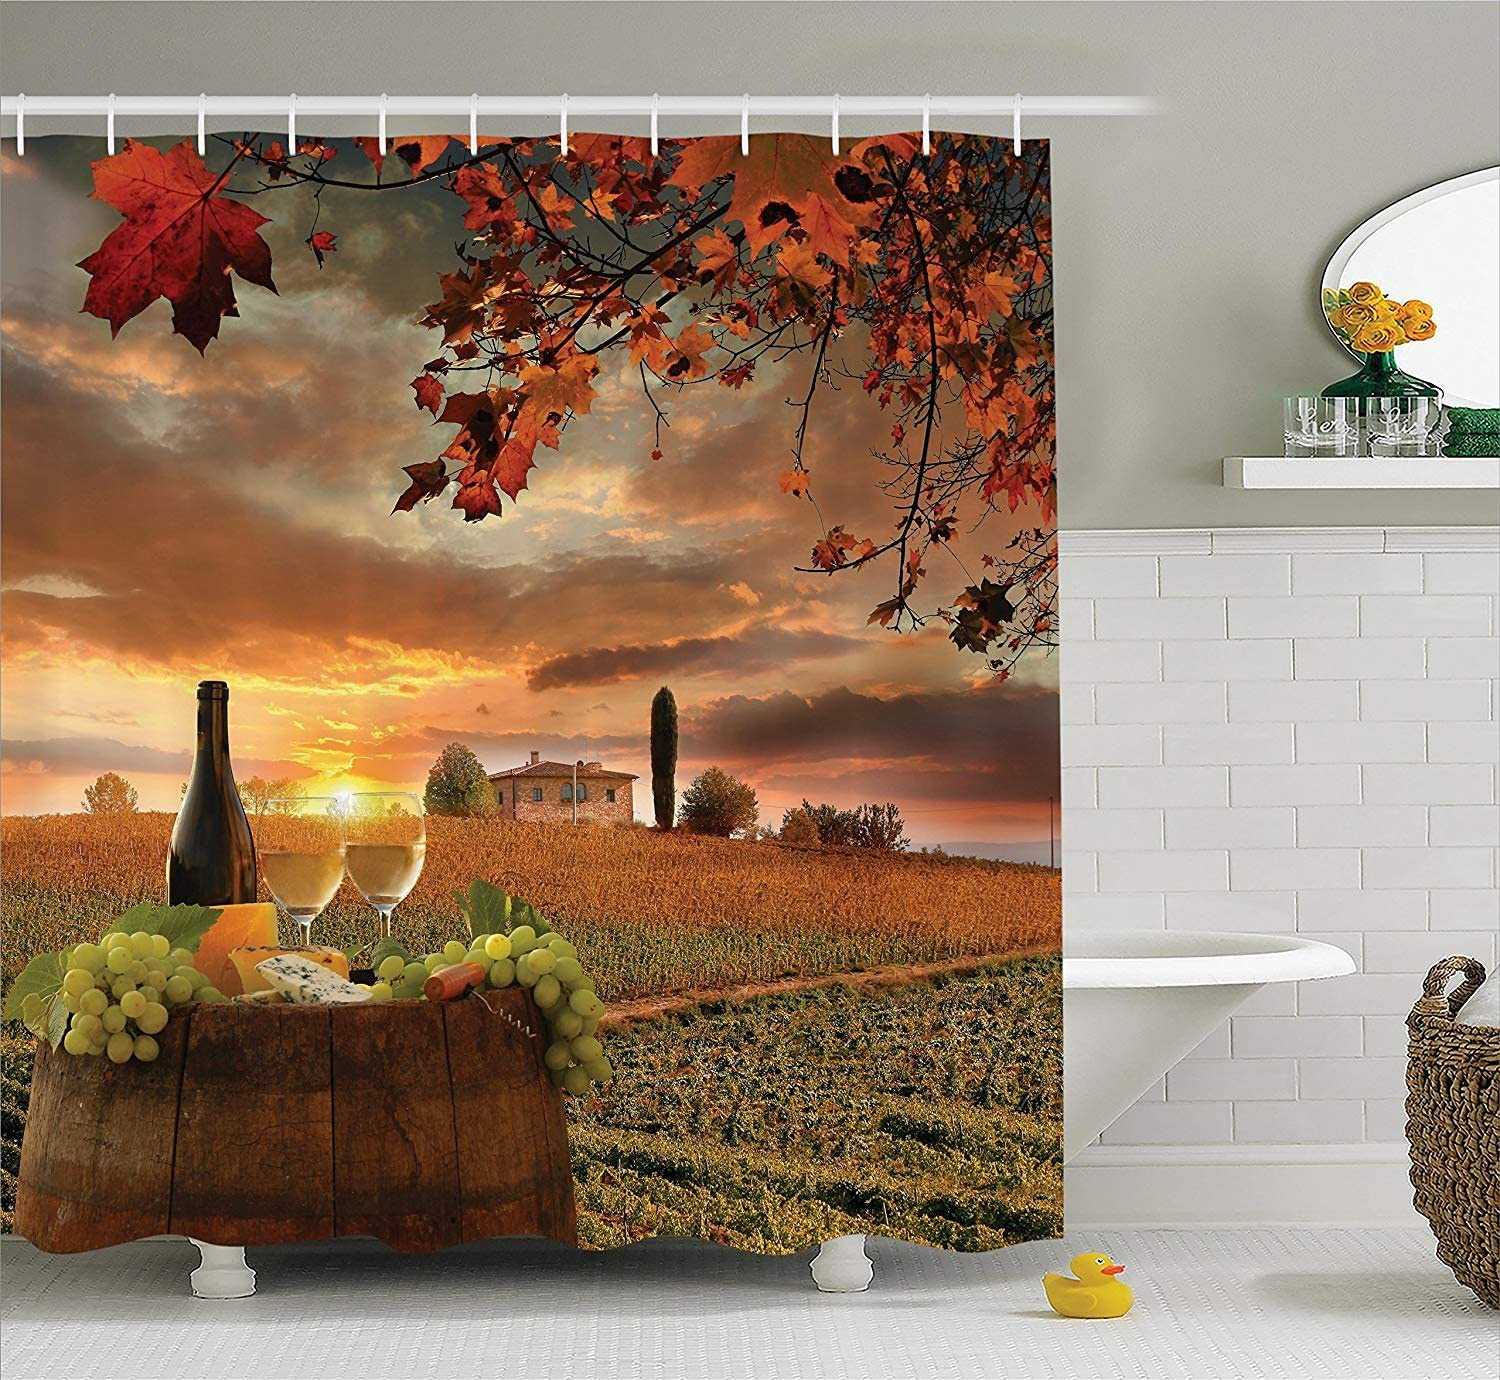 Ambesonne Winery Shower Curtain, White Wine with Cask on Vineyard at Sunset in Chianti Tuscany Italy, Cloth Fabric Bathroom Decor Set with Hooks, 70